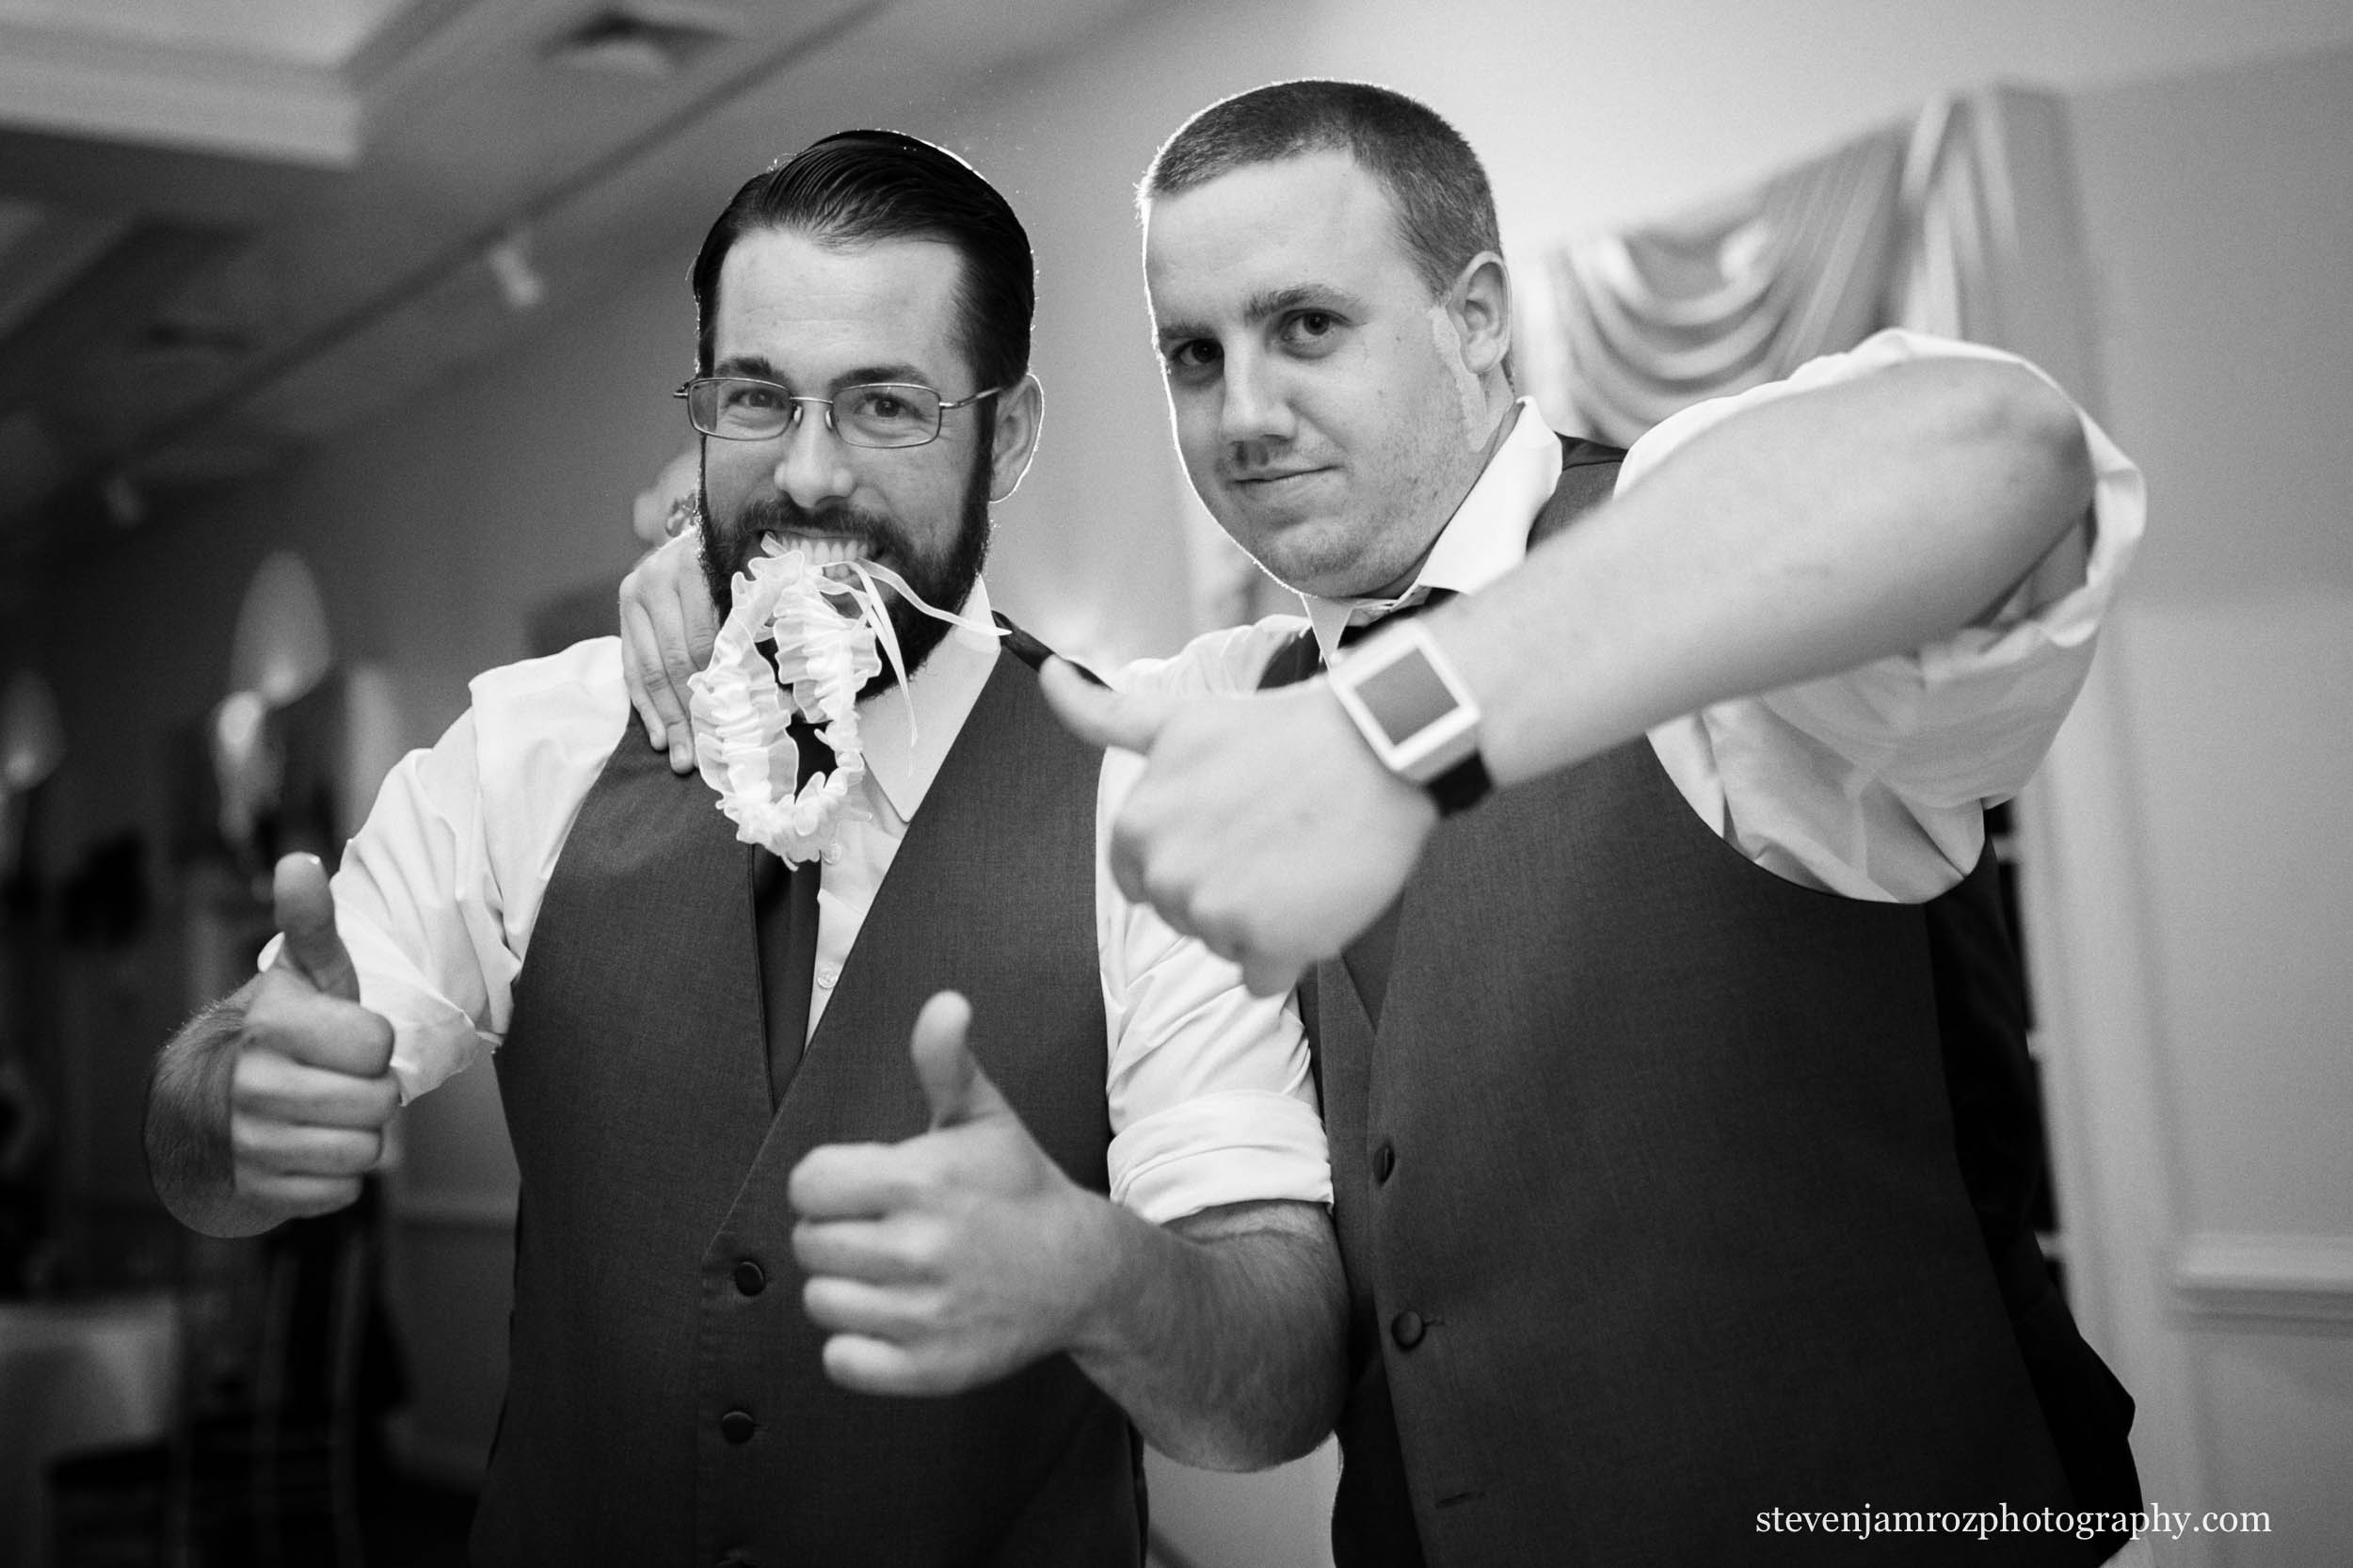 catches-garter-in-mouth-raleigh-wedding-steven-jamroz-0749.jpg